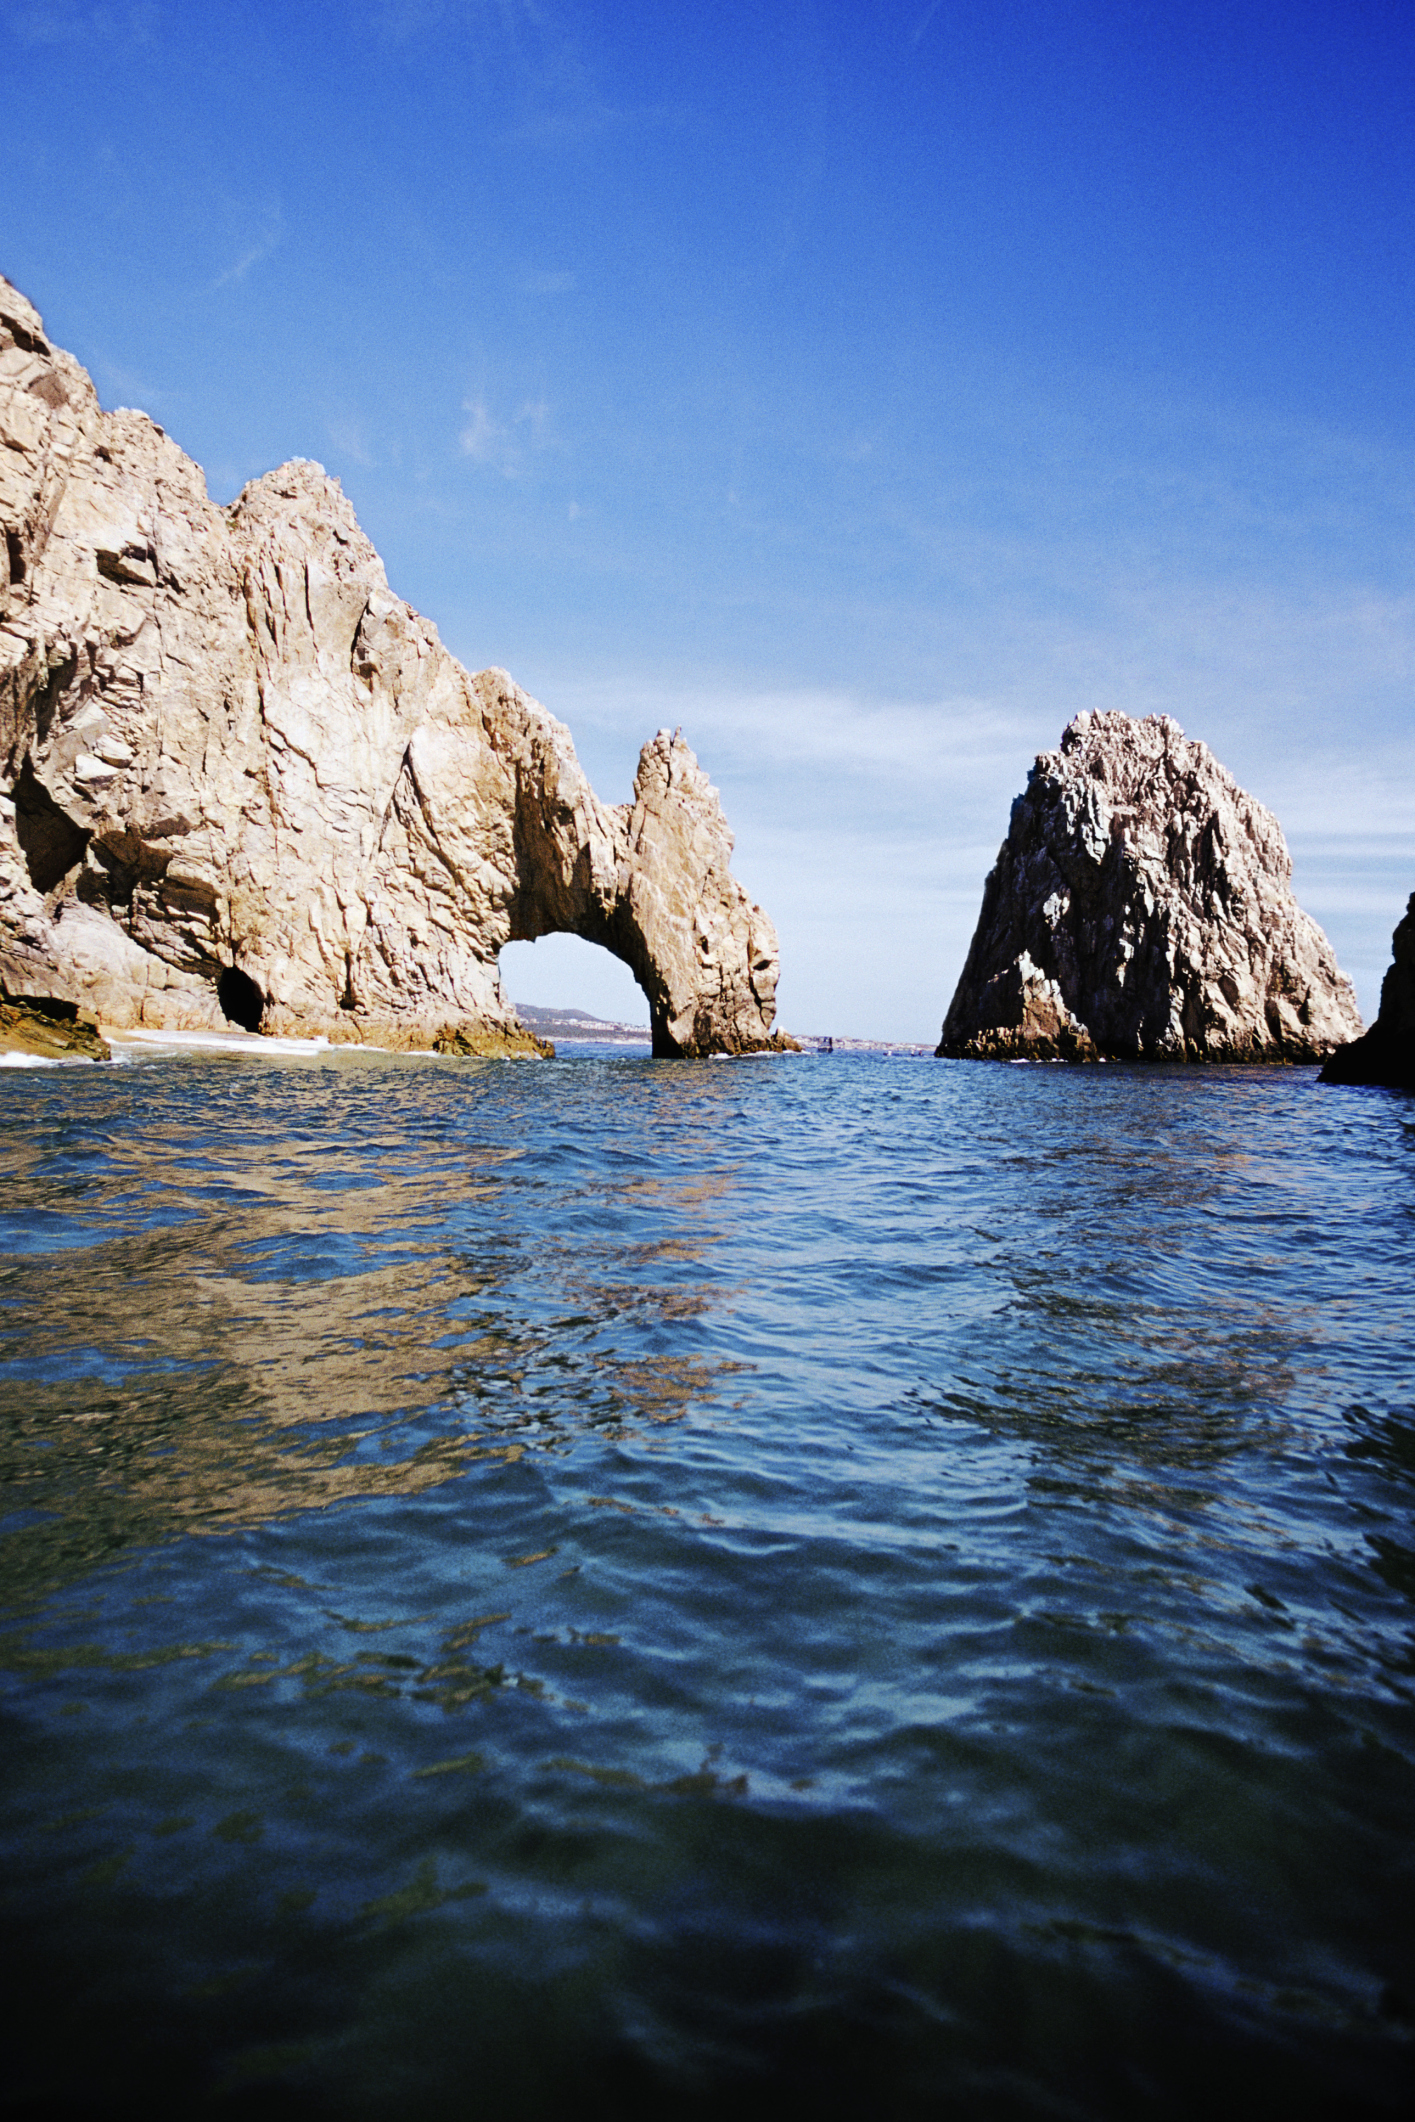 when is the cheapest time to visit mexican beaches? | usa today